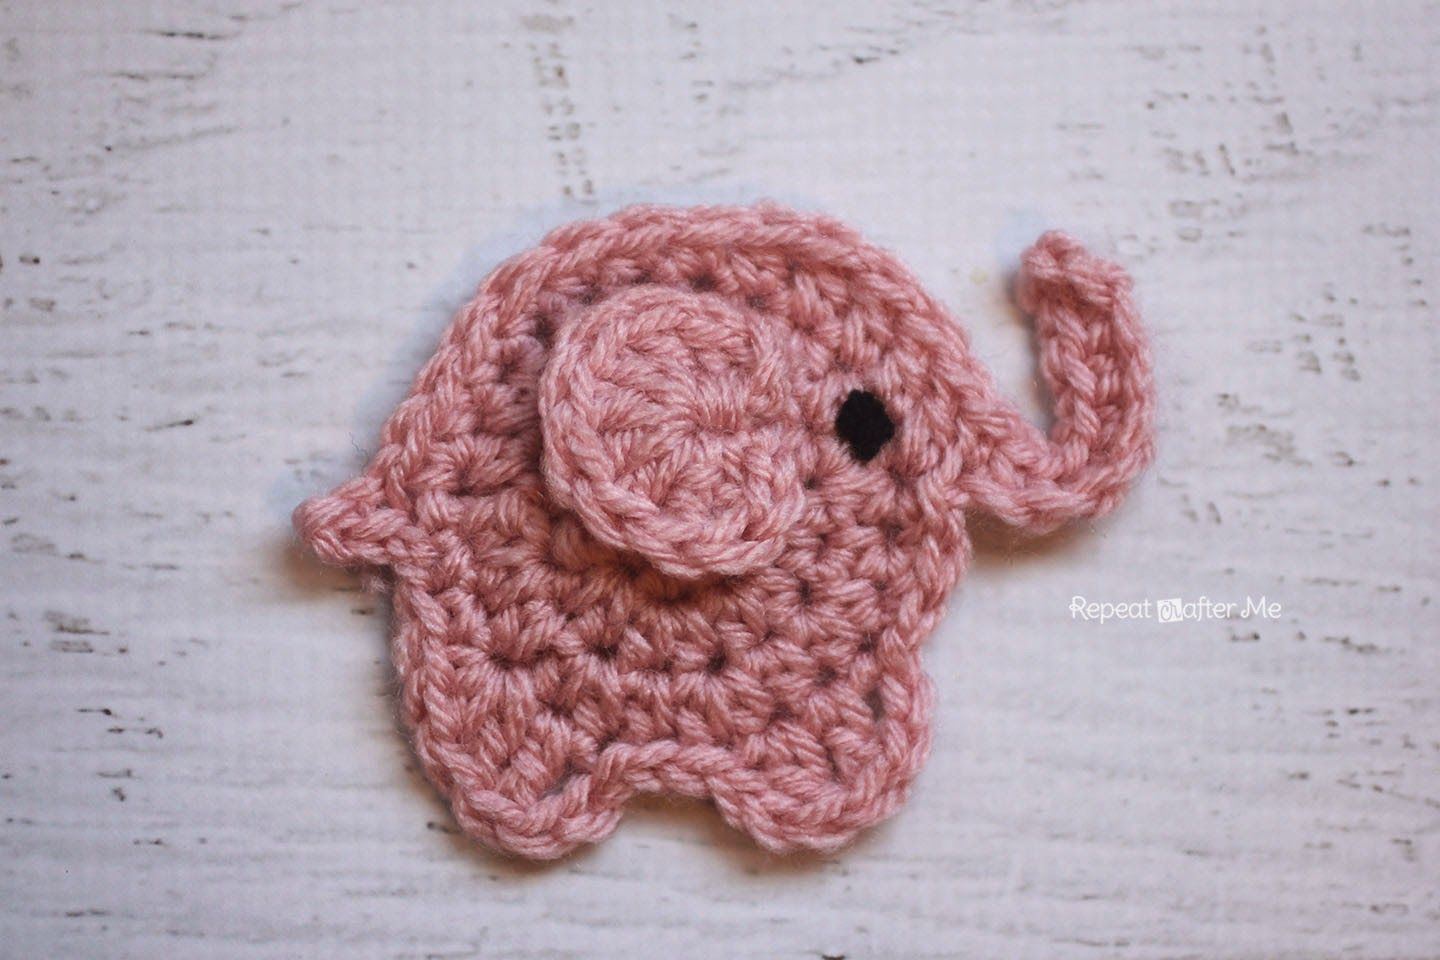 Amigurumi Elephant Pattern : E is for elephant: crochet elephant applique elephant applique